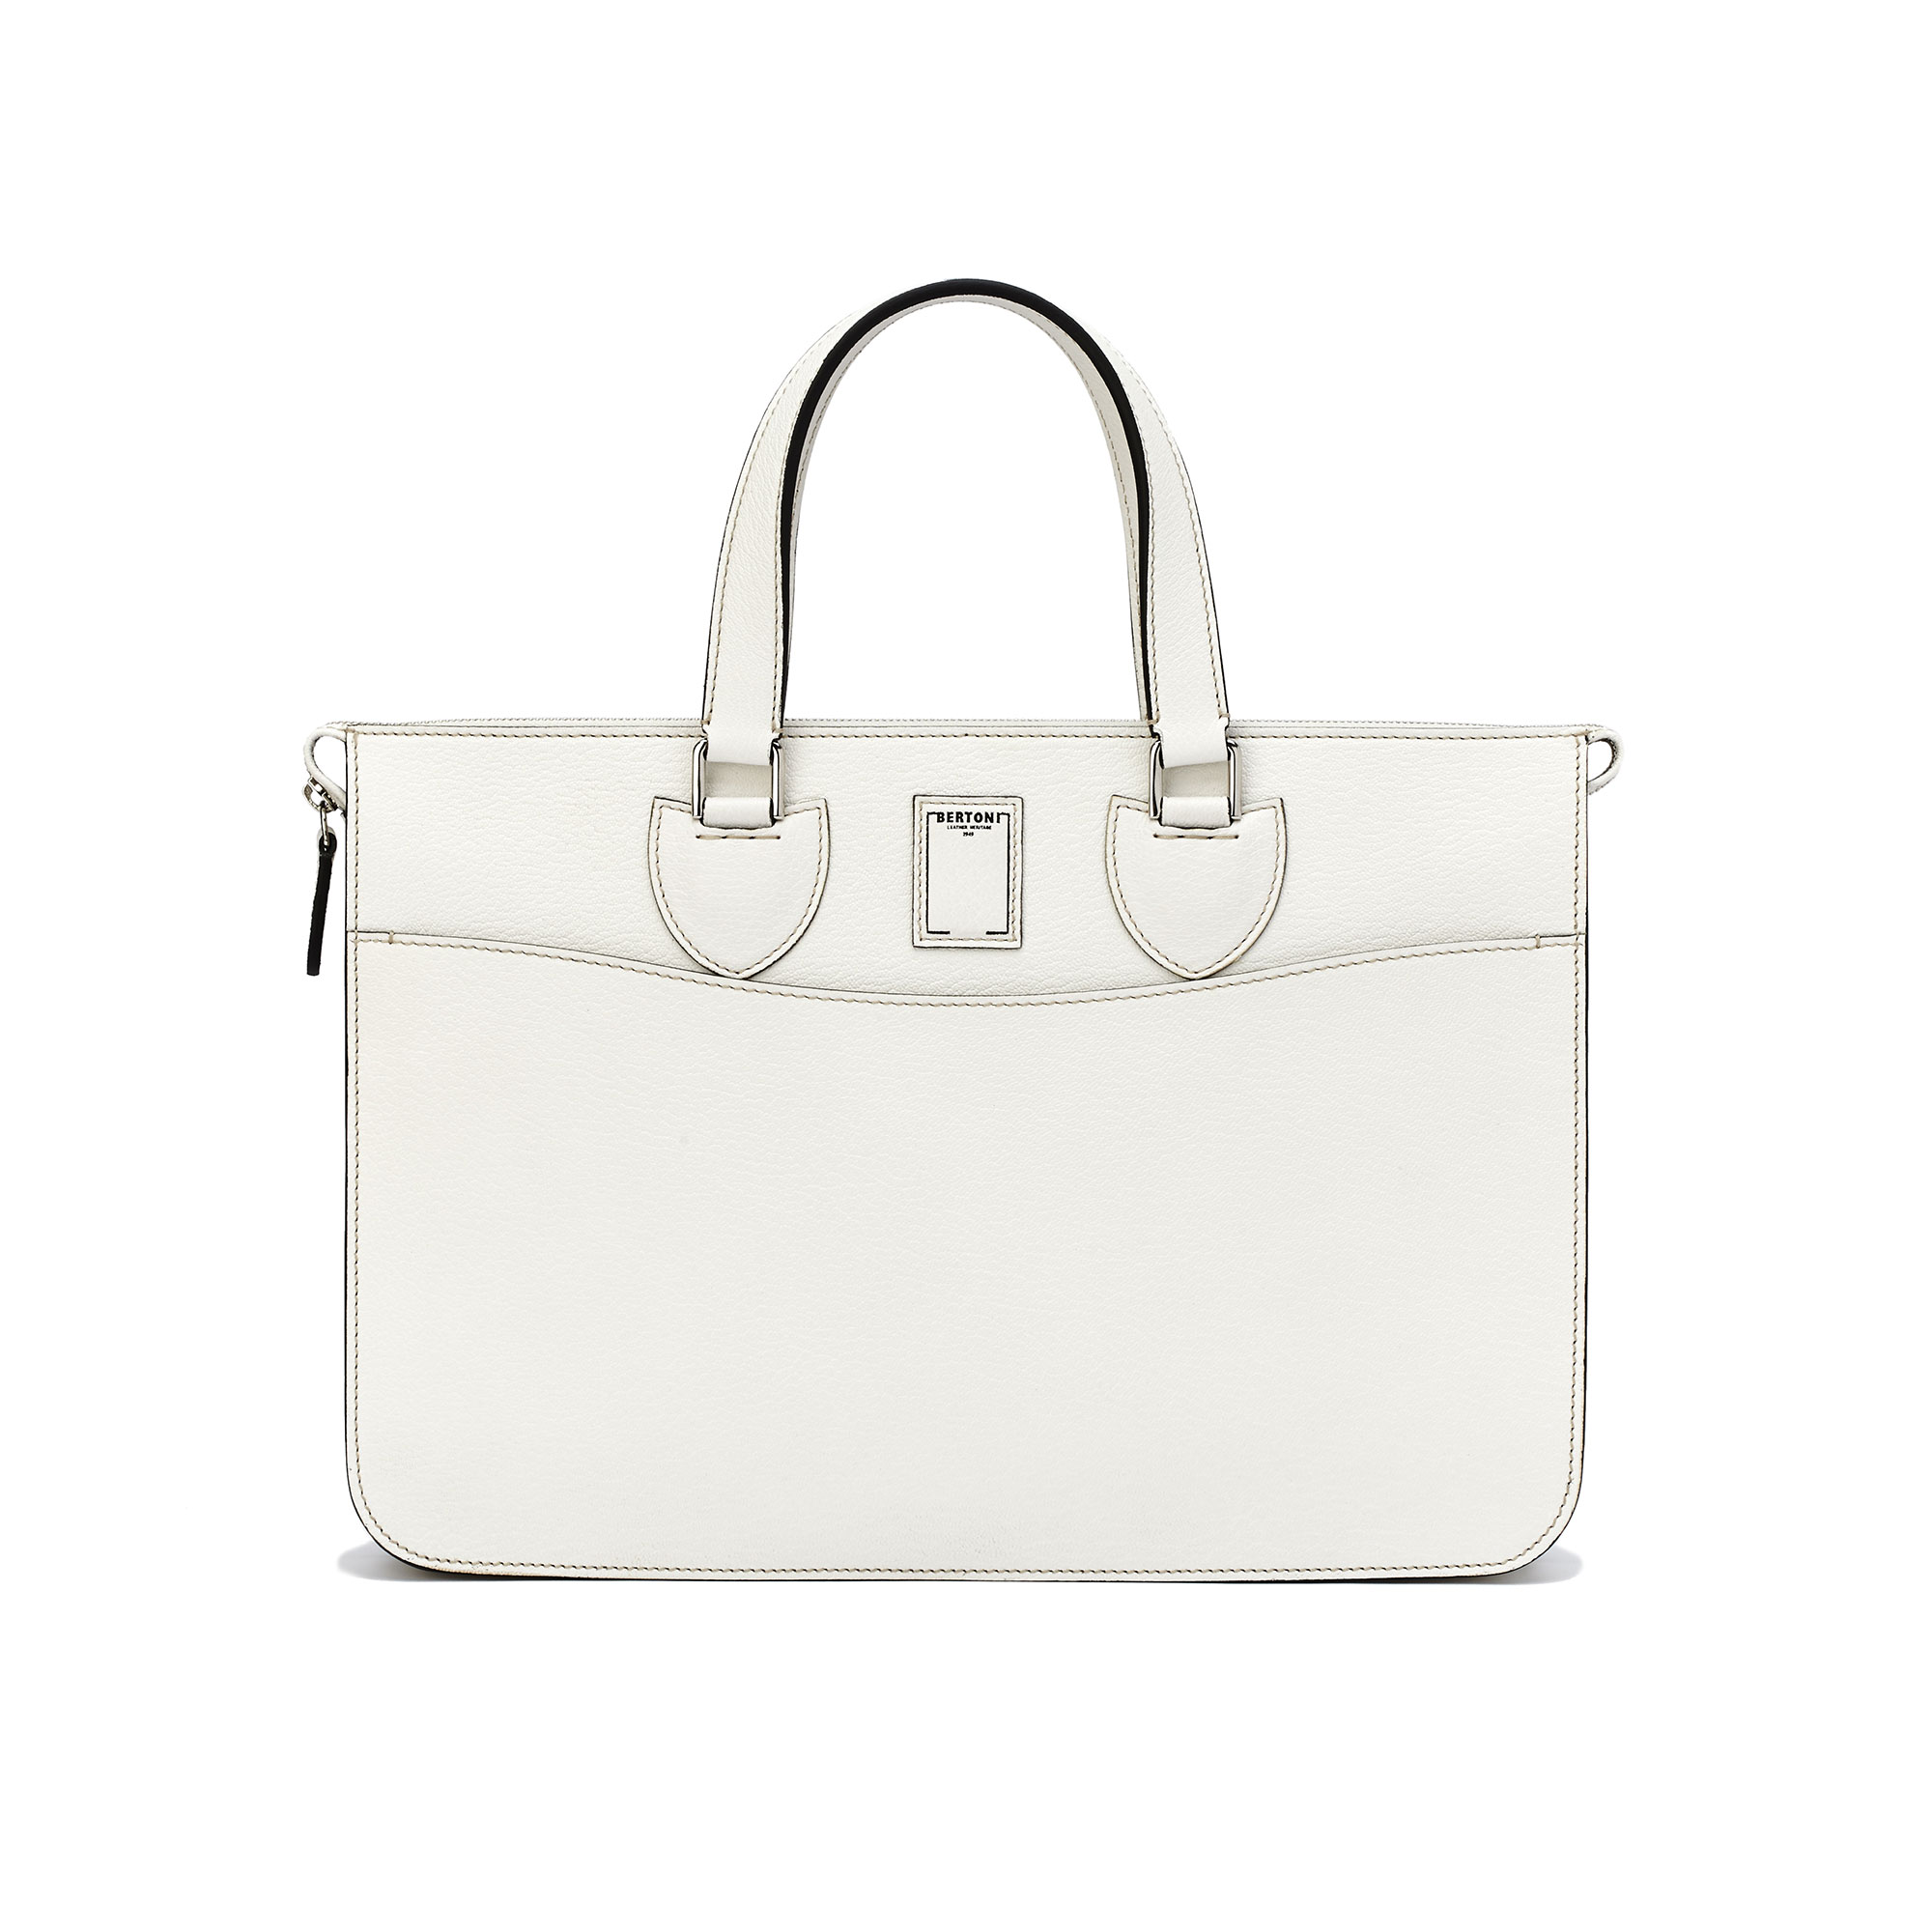 Single-Layer-Case-Ivory-goat-skin-bag-Bertoni-1949